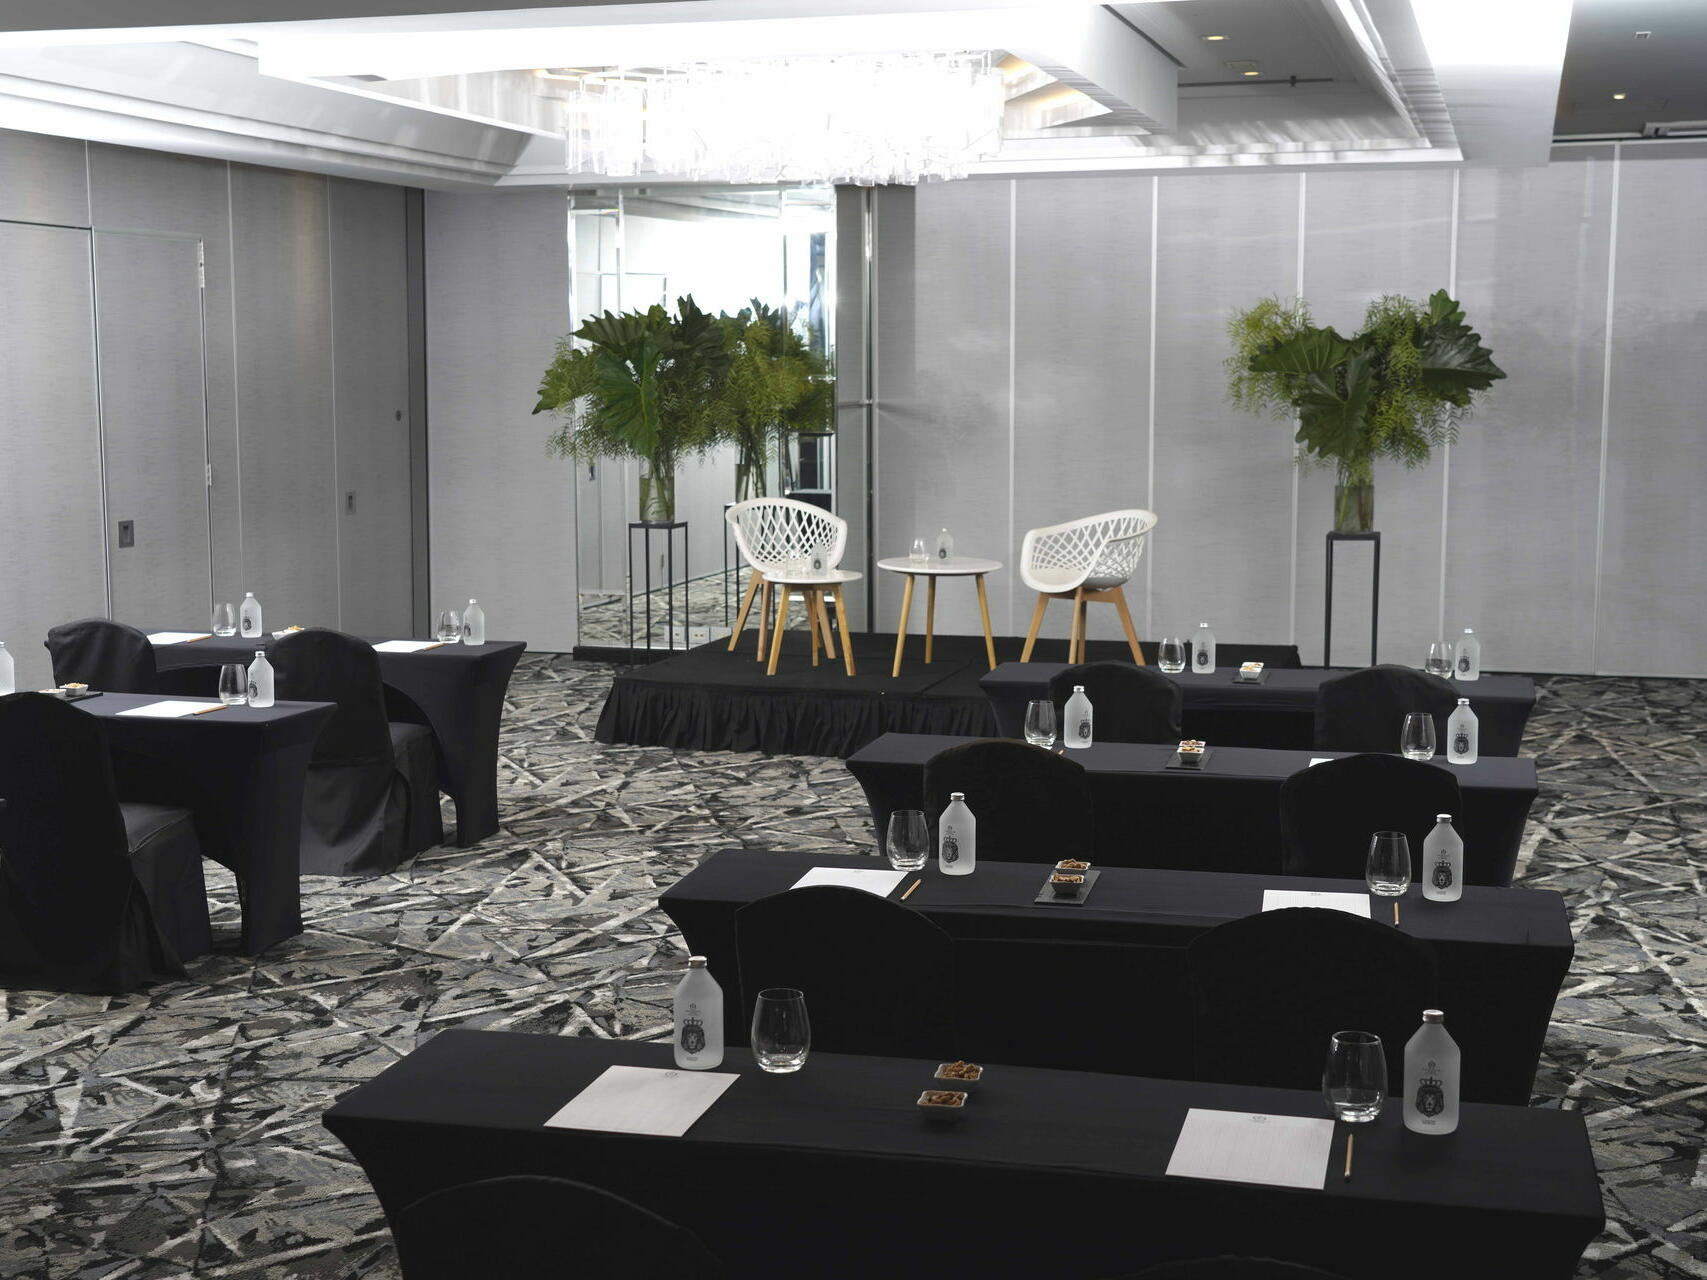 Granada meeting room arranged with black tables and chairs at Hotel Emperador Buenos Aires